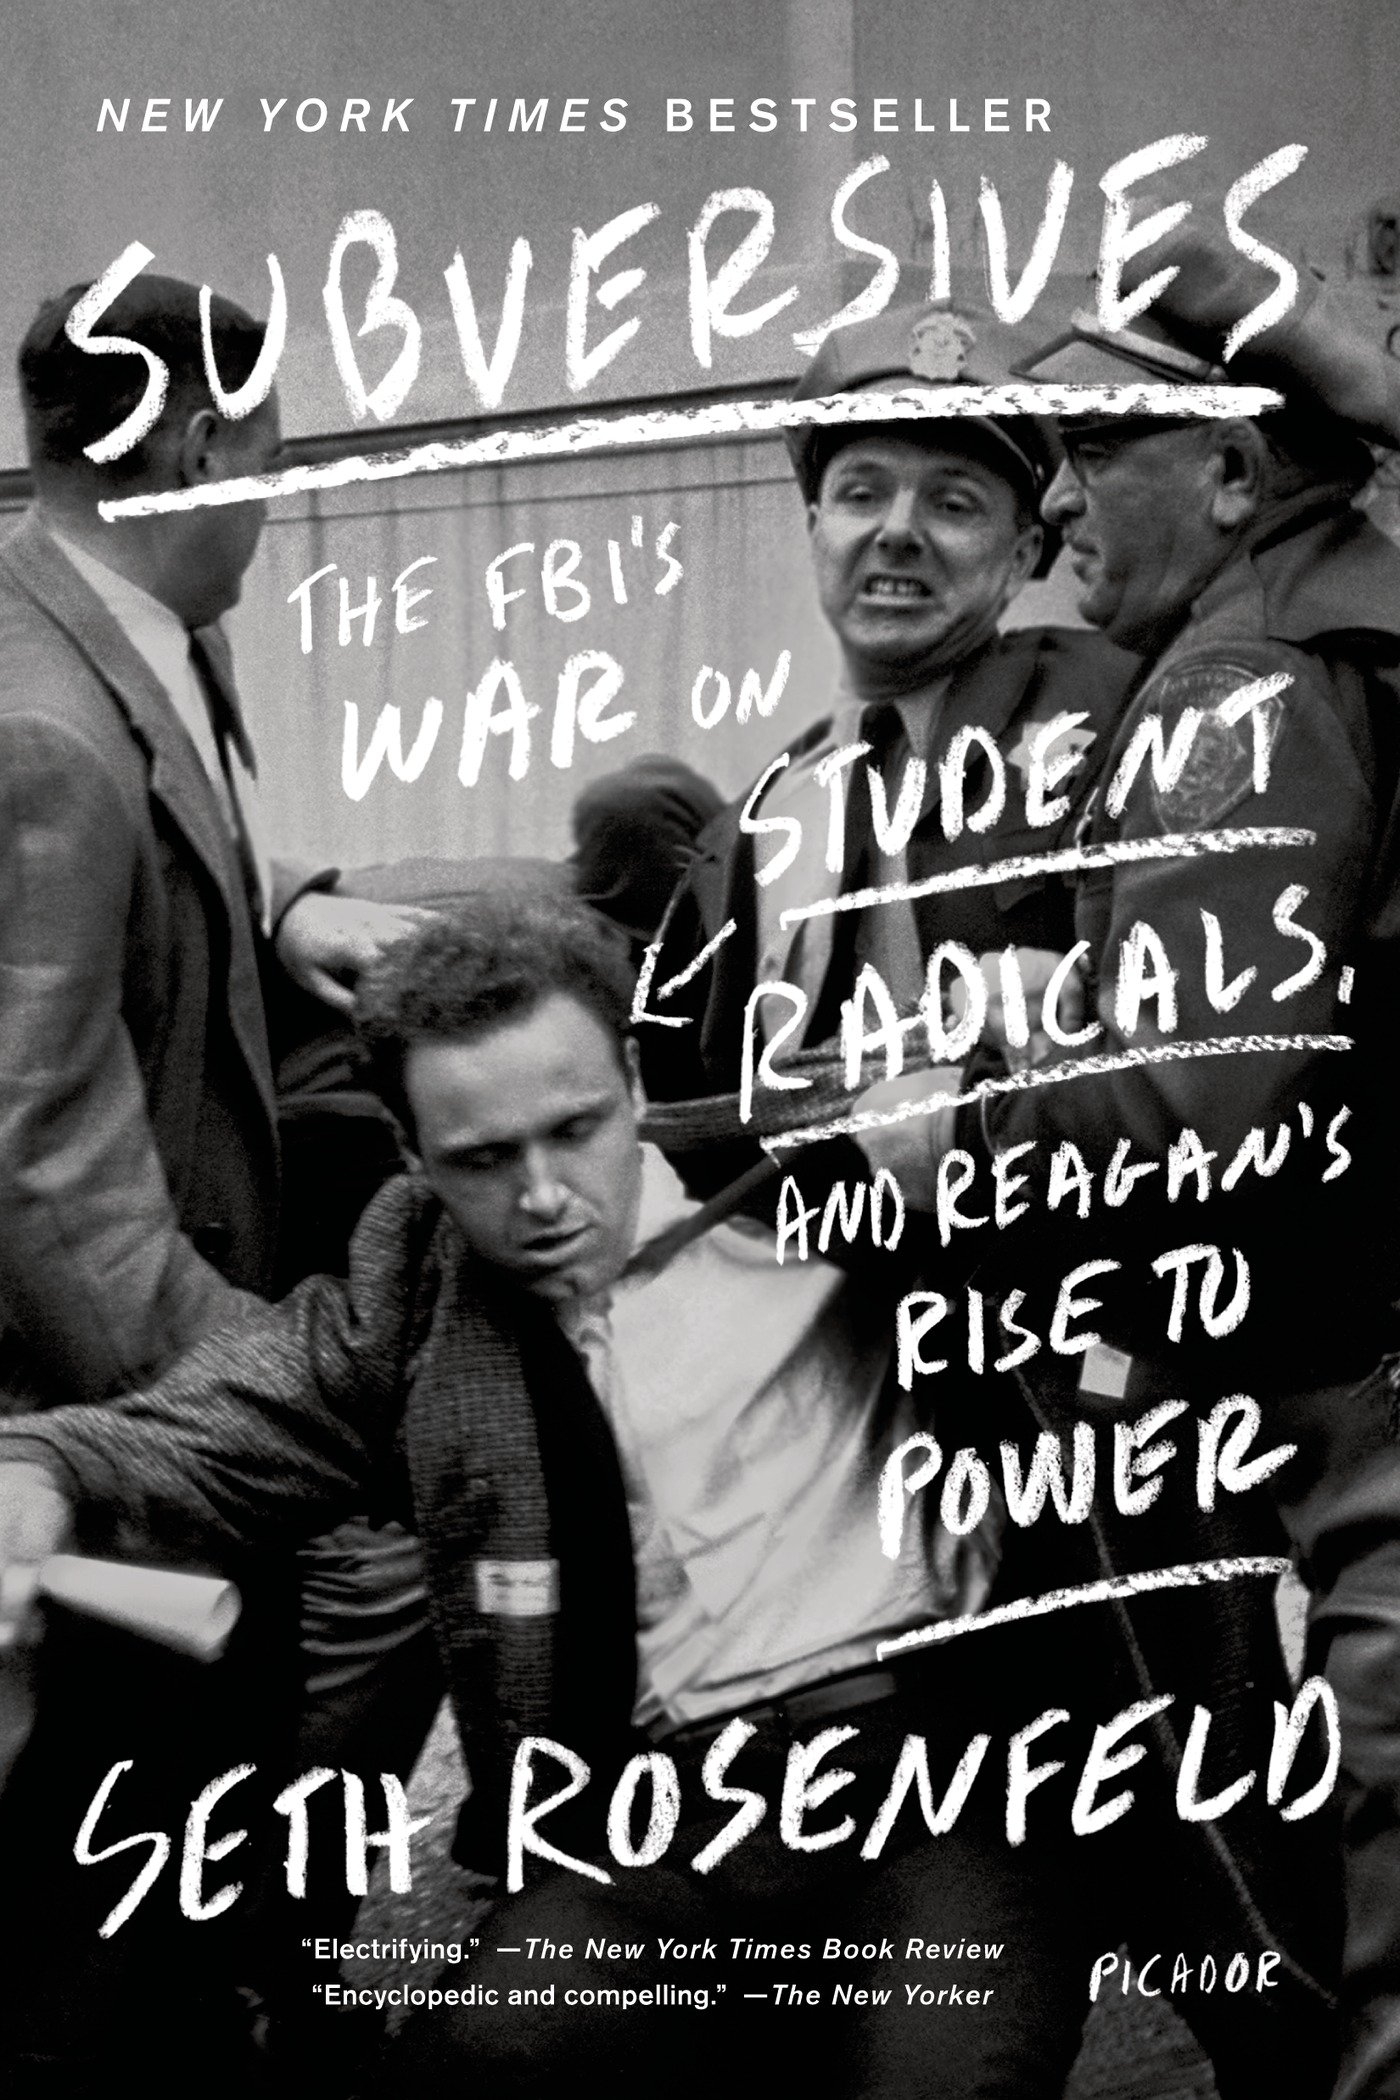 Subversives: The FBI's War on Student Radicals, and Reagan's Rise to Power by Seth Rosenfeld